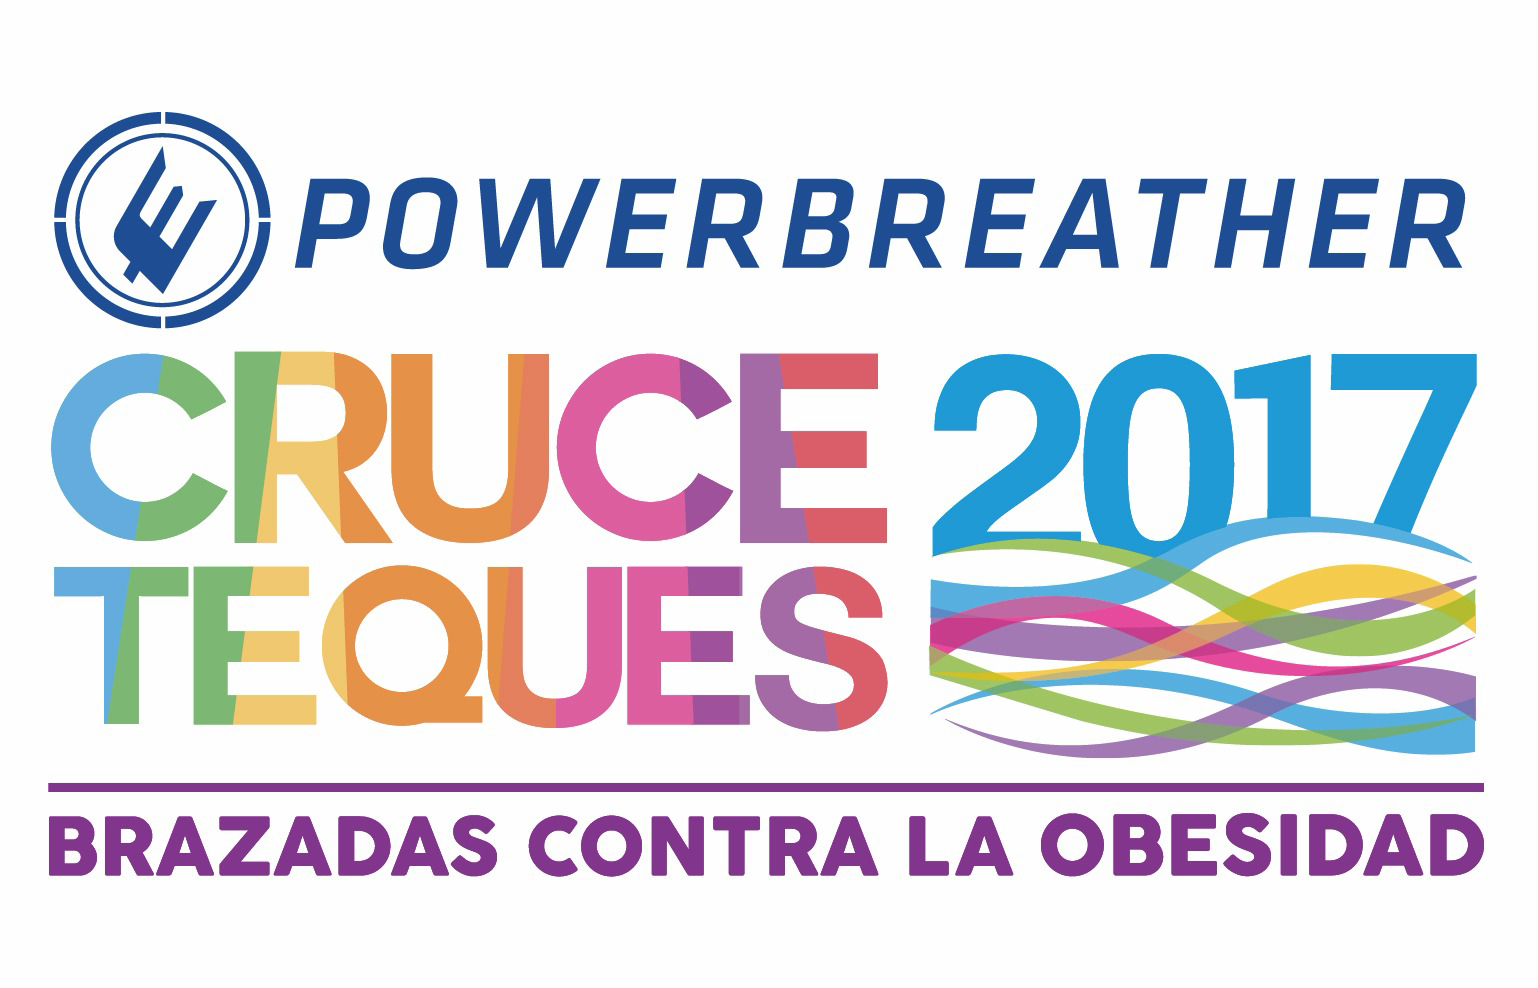 LOGO - CRUCE TEQUES 2017.png